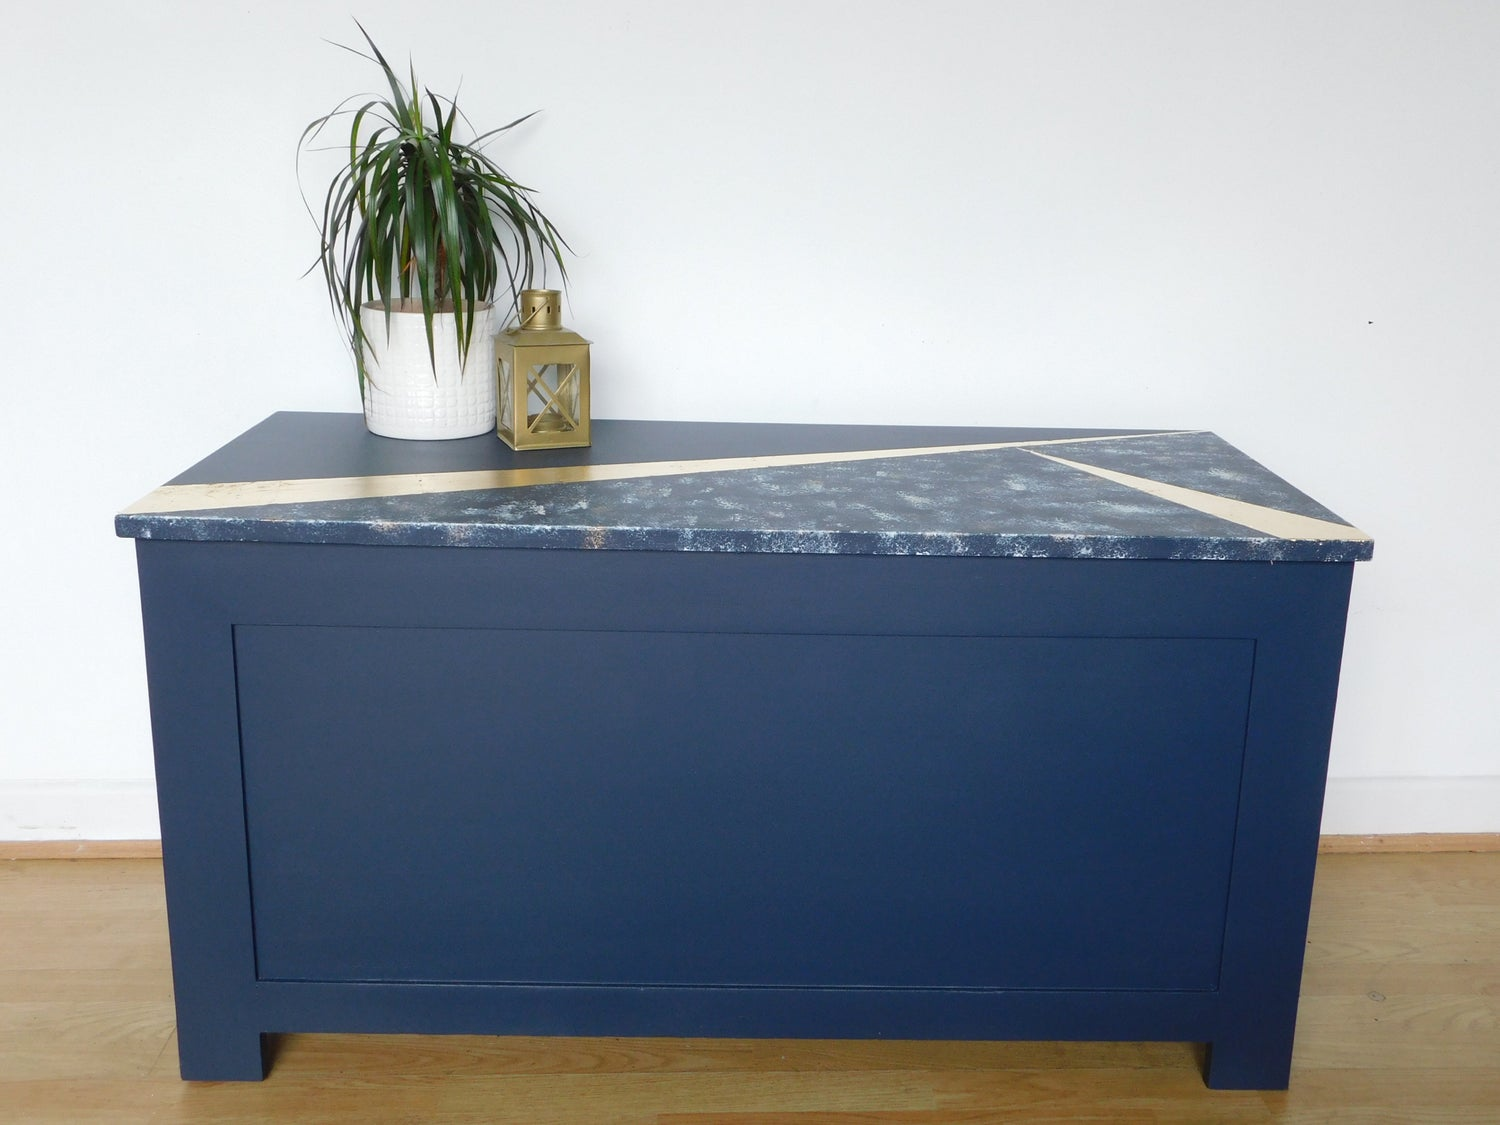 Image of A dark blue & gold design storage box